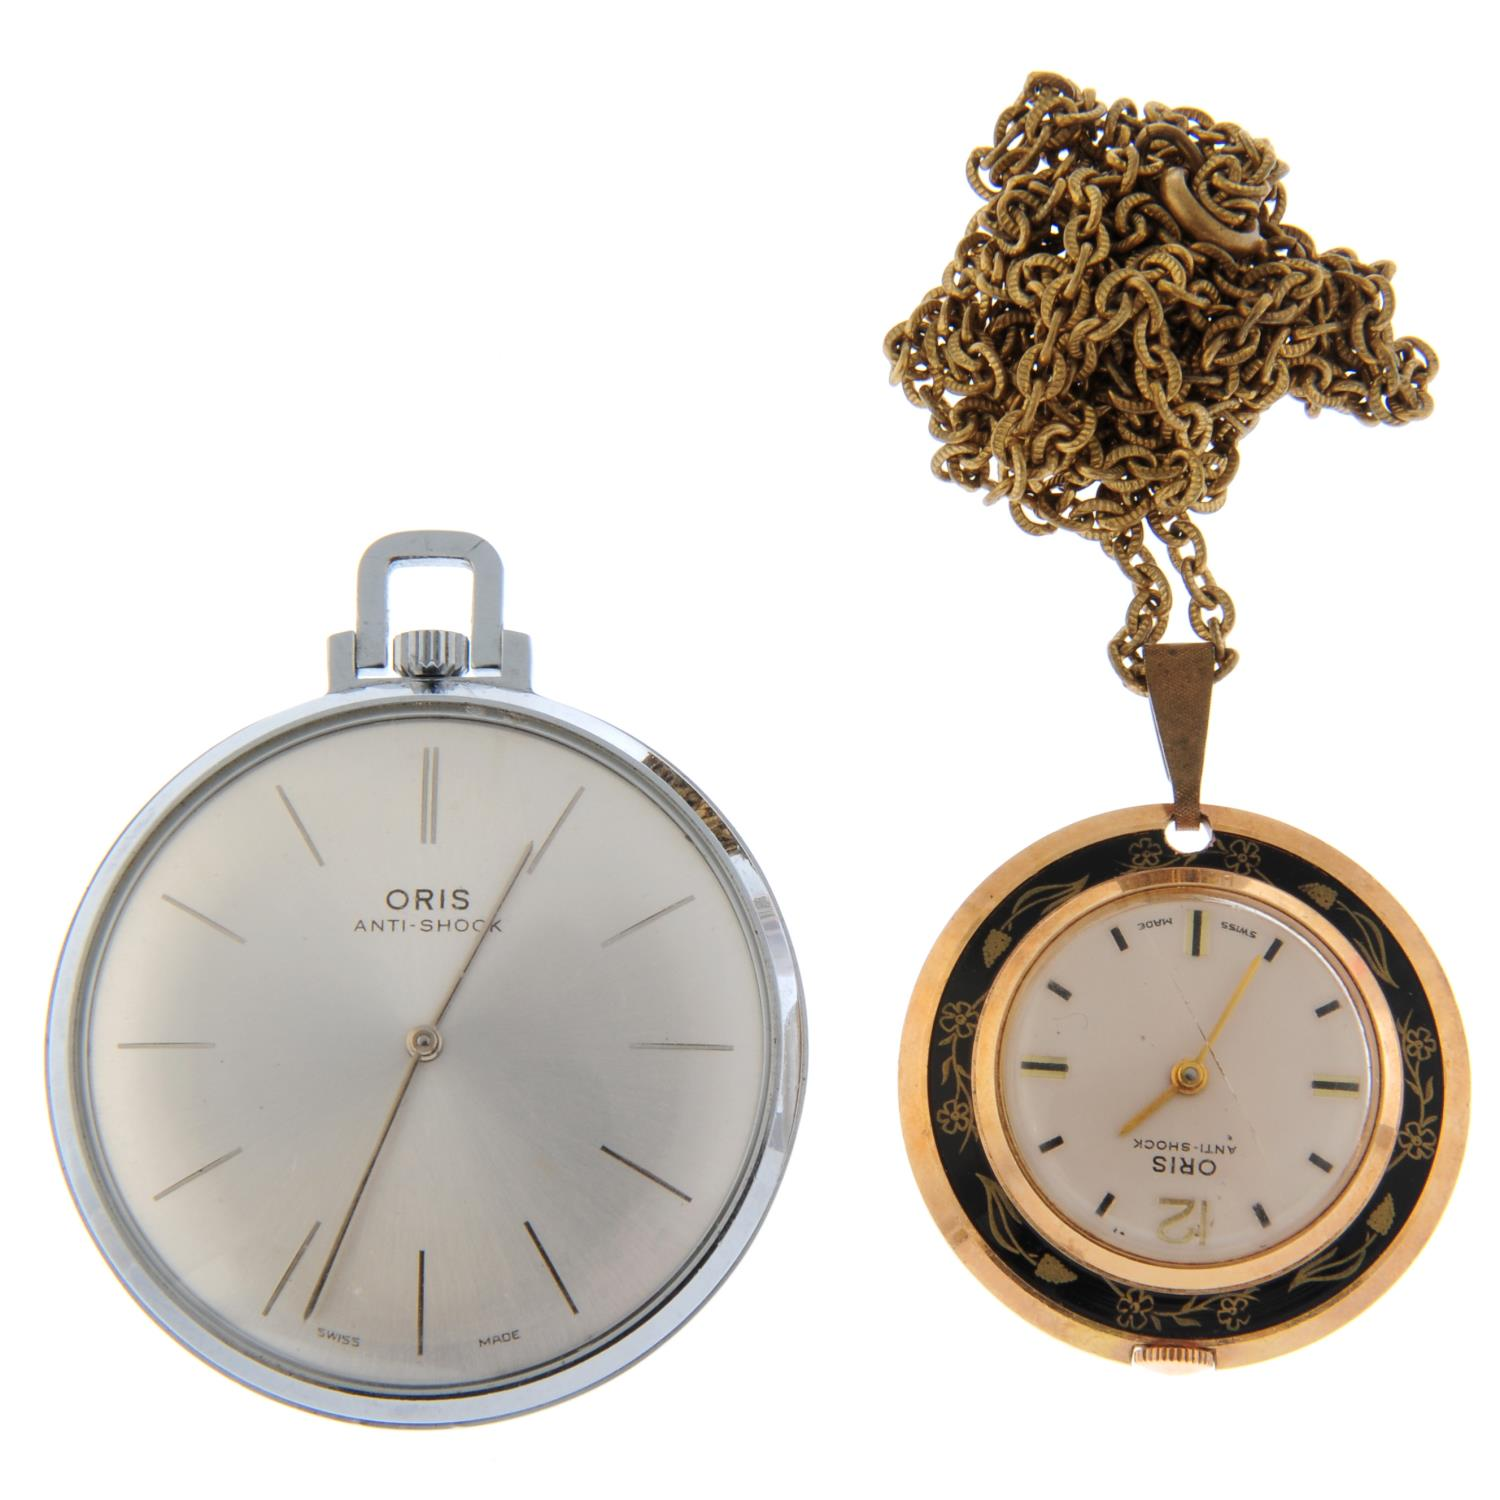 An open face pocket watch by Waltham. - Image 4 of 5